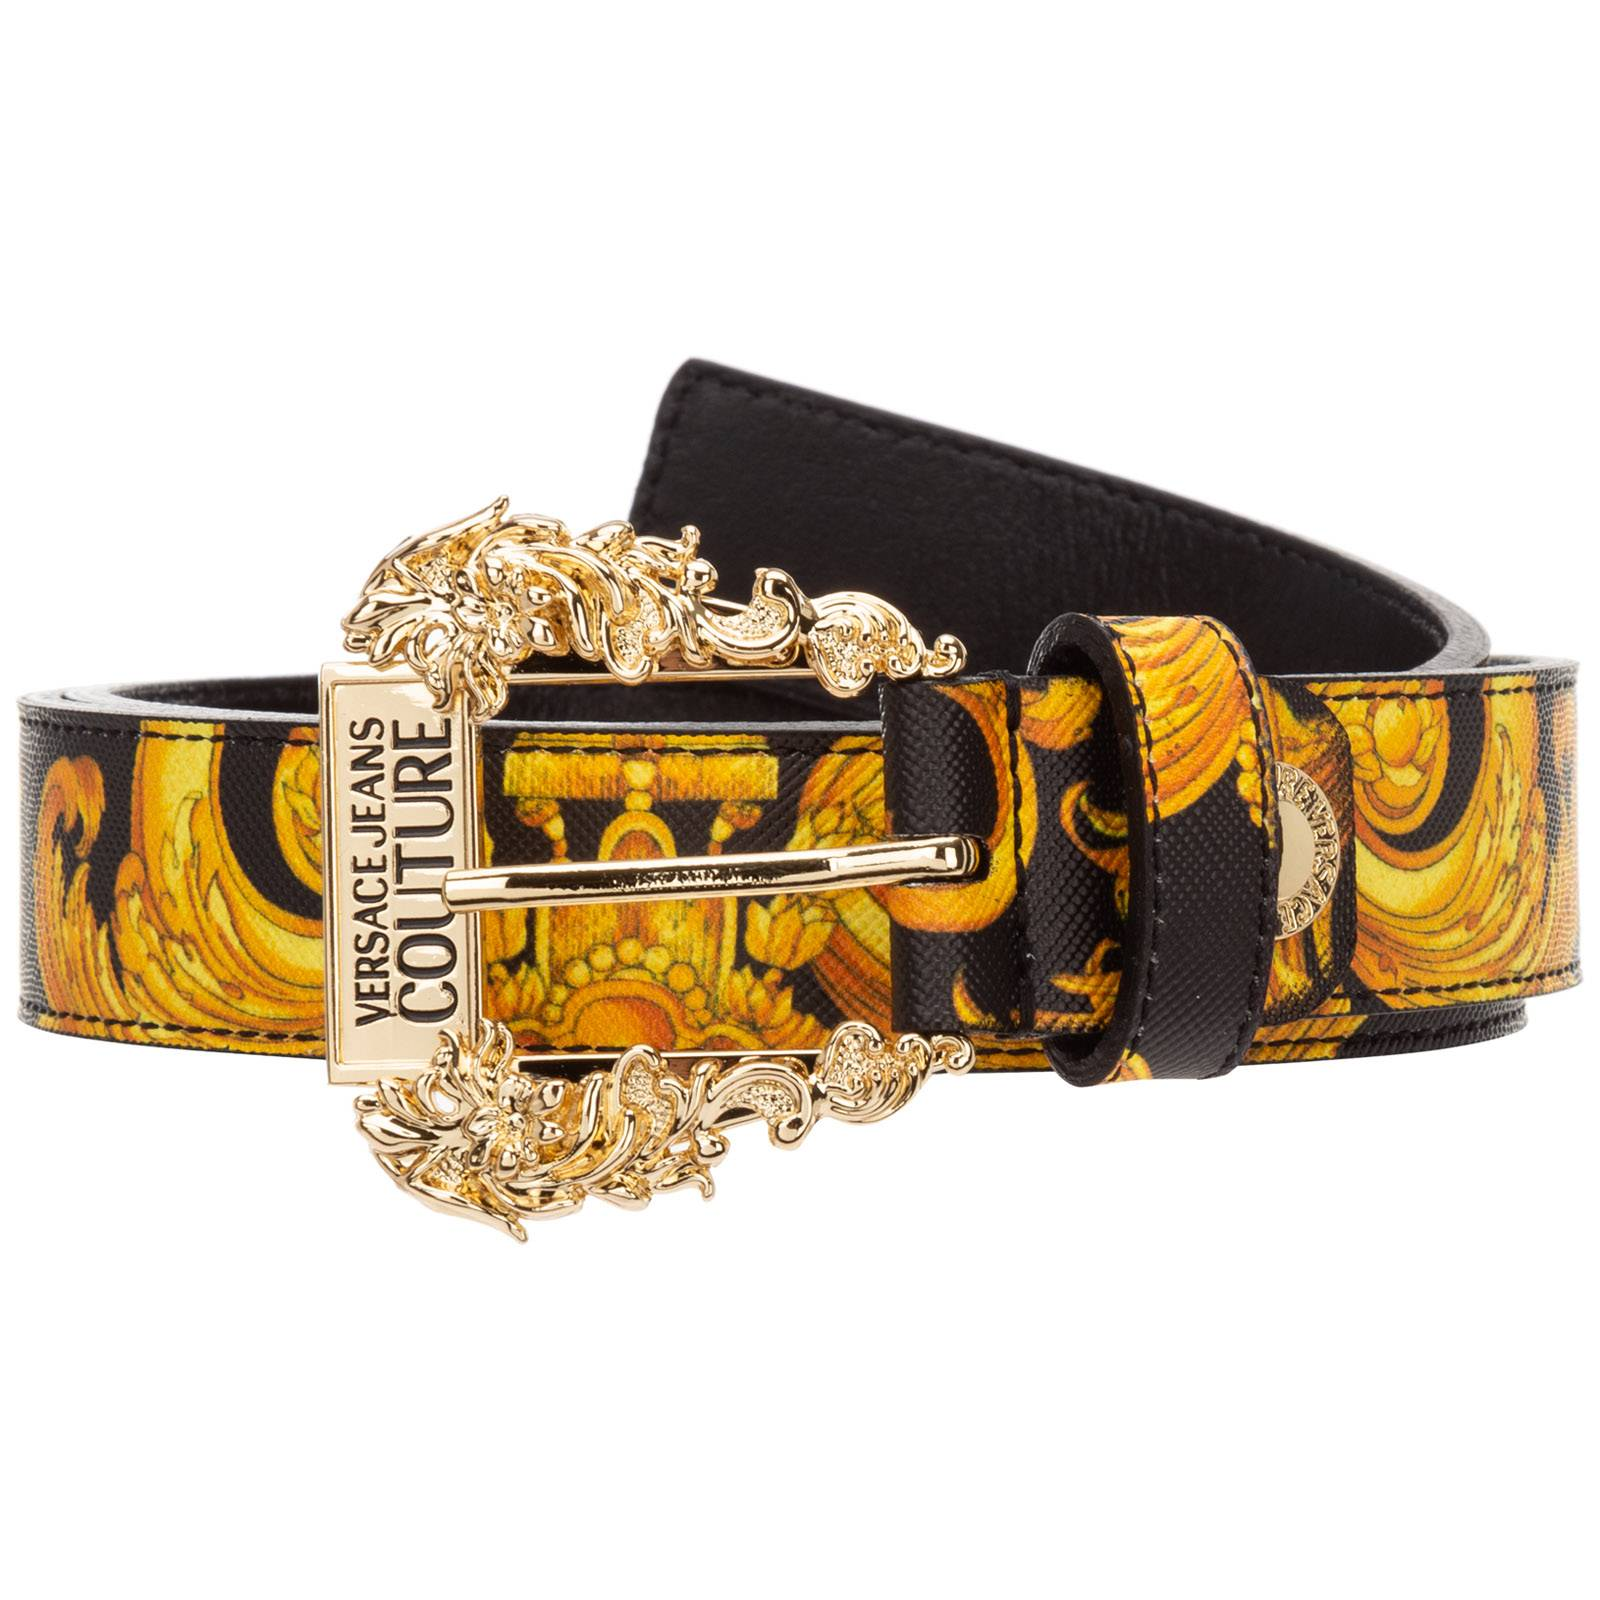 Versace Women's belt baroque  - Black - Size: 85